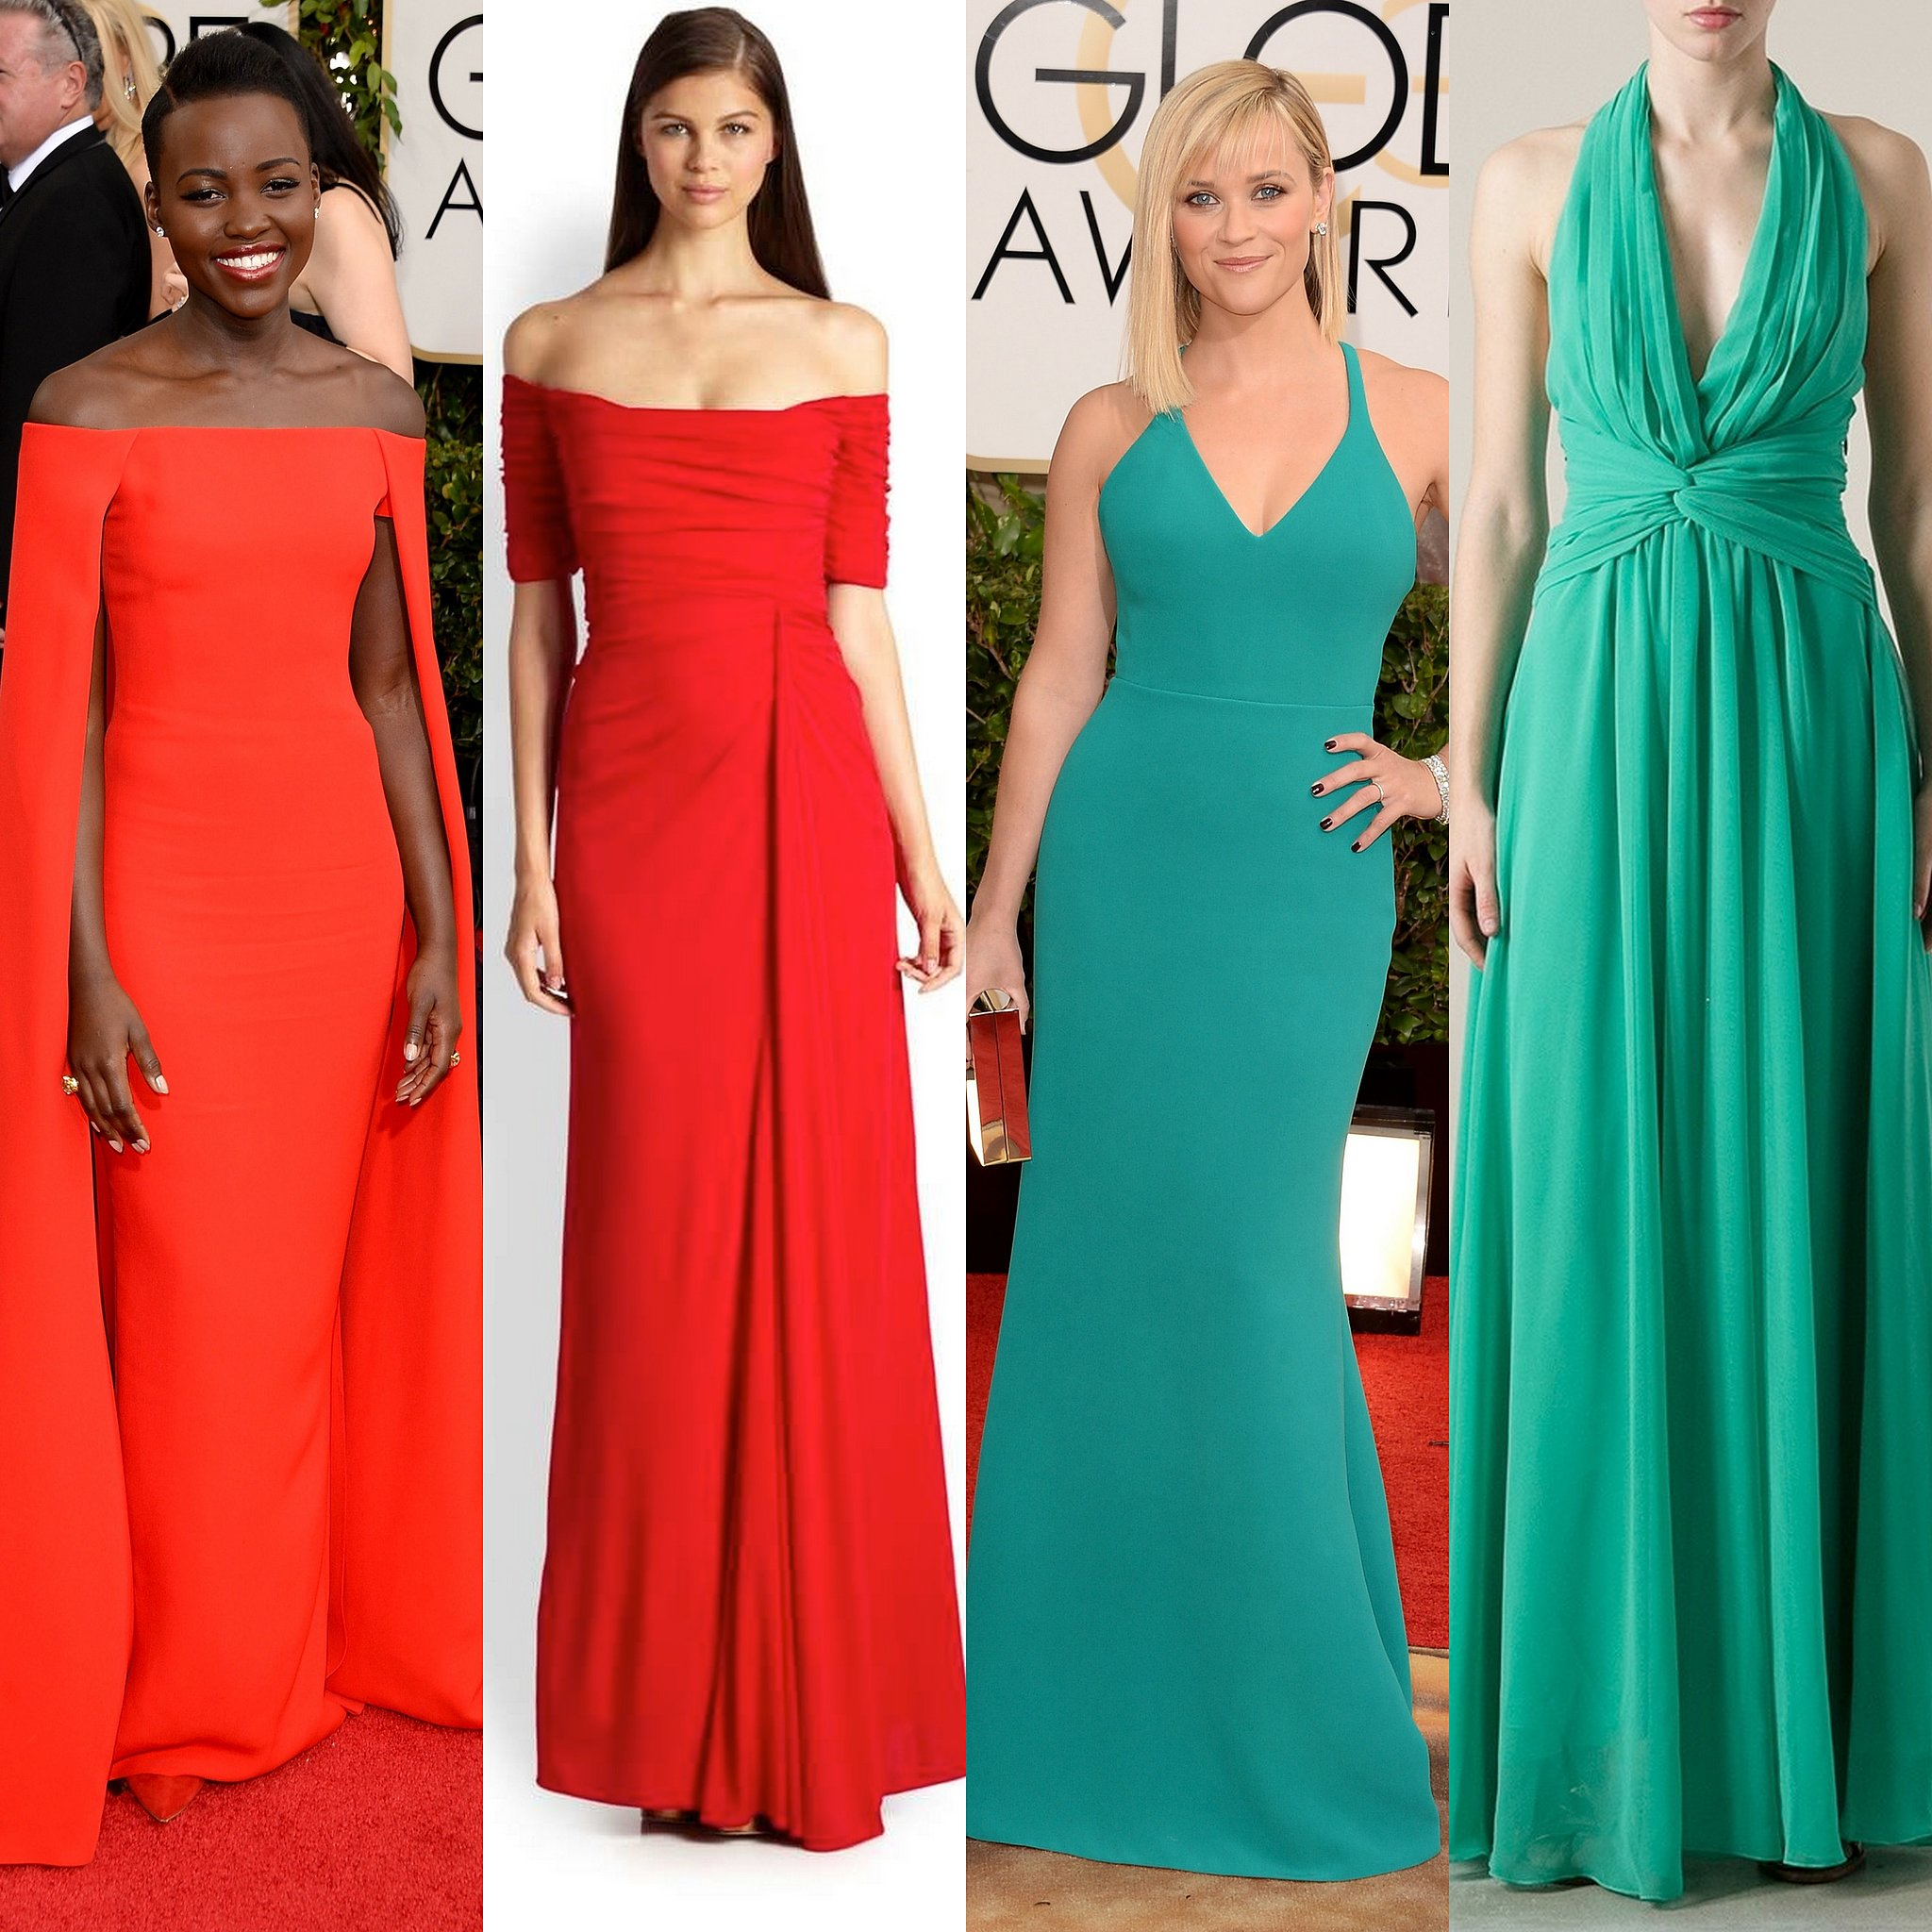 Reese Witherspoon is the epitomy of California cool in her green halter dress. Lupita Nyong'o in the Ralph Lauren Audrey Cape Evening gown is hands down my favorite look of the evening. She is simply radiant in red.